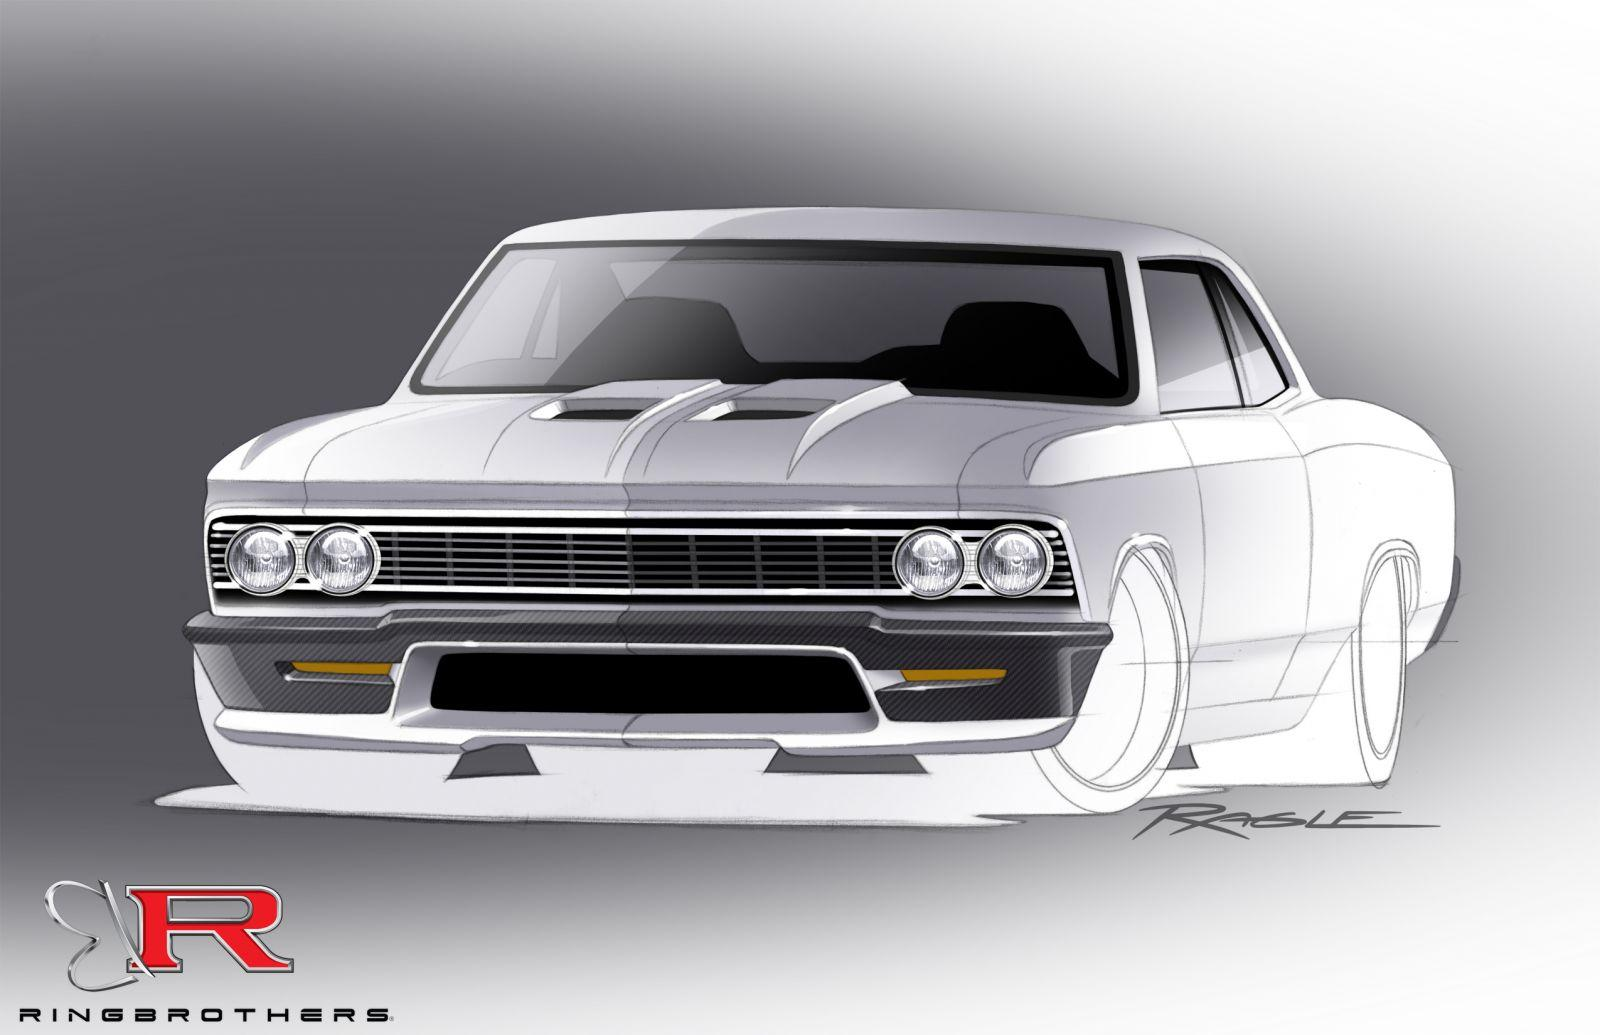 Ring Brothers Bringing 980 Horsepower Chevy Chevelle To Sema